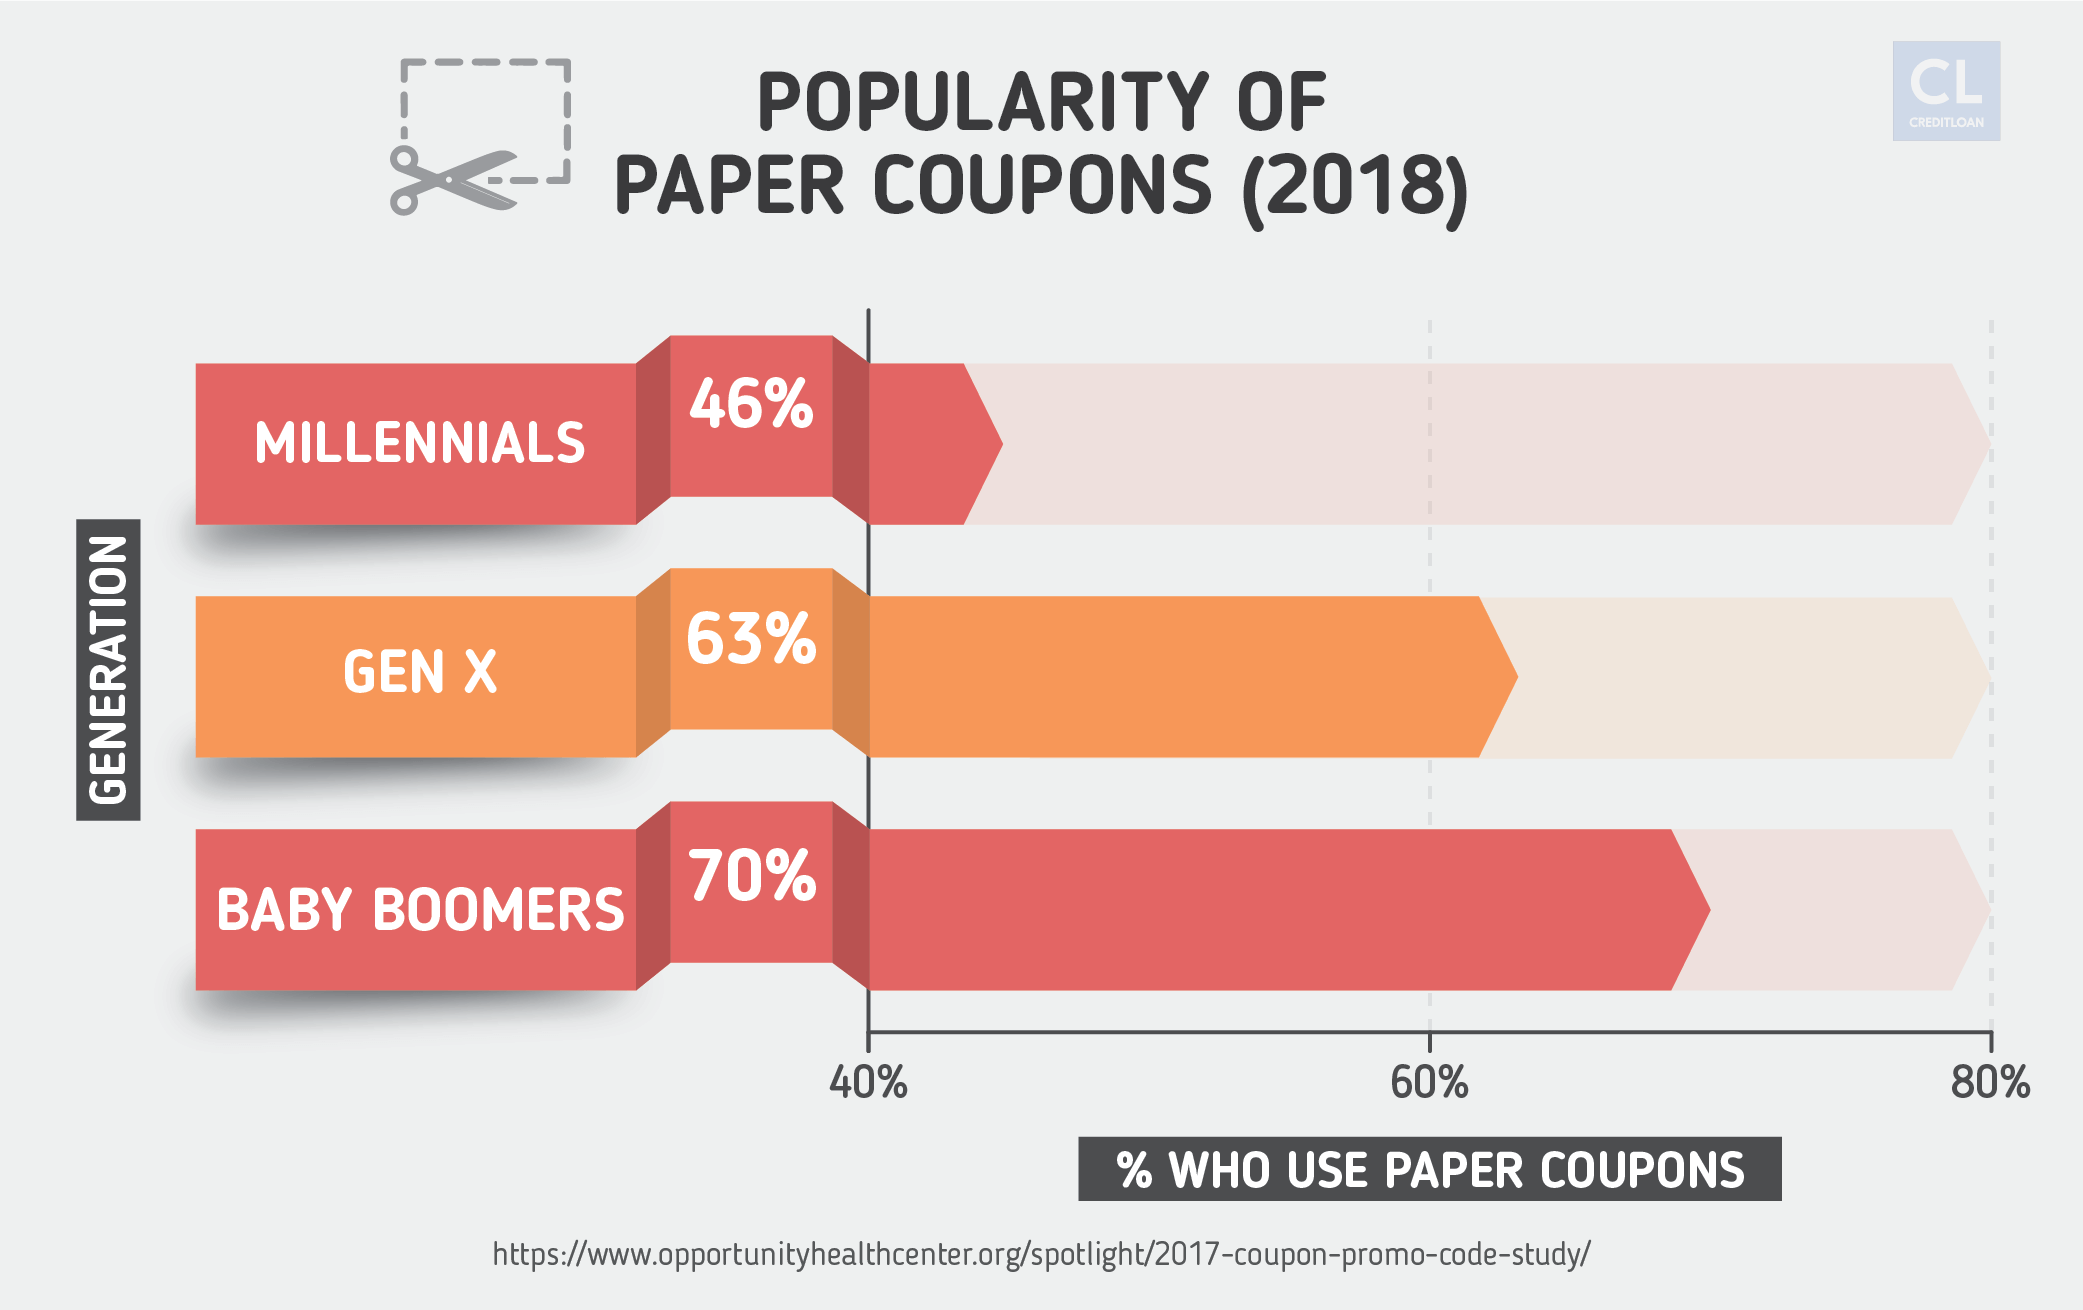 Popularity of Paper Coupons in 2018